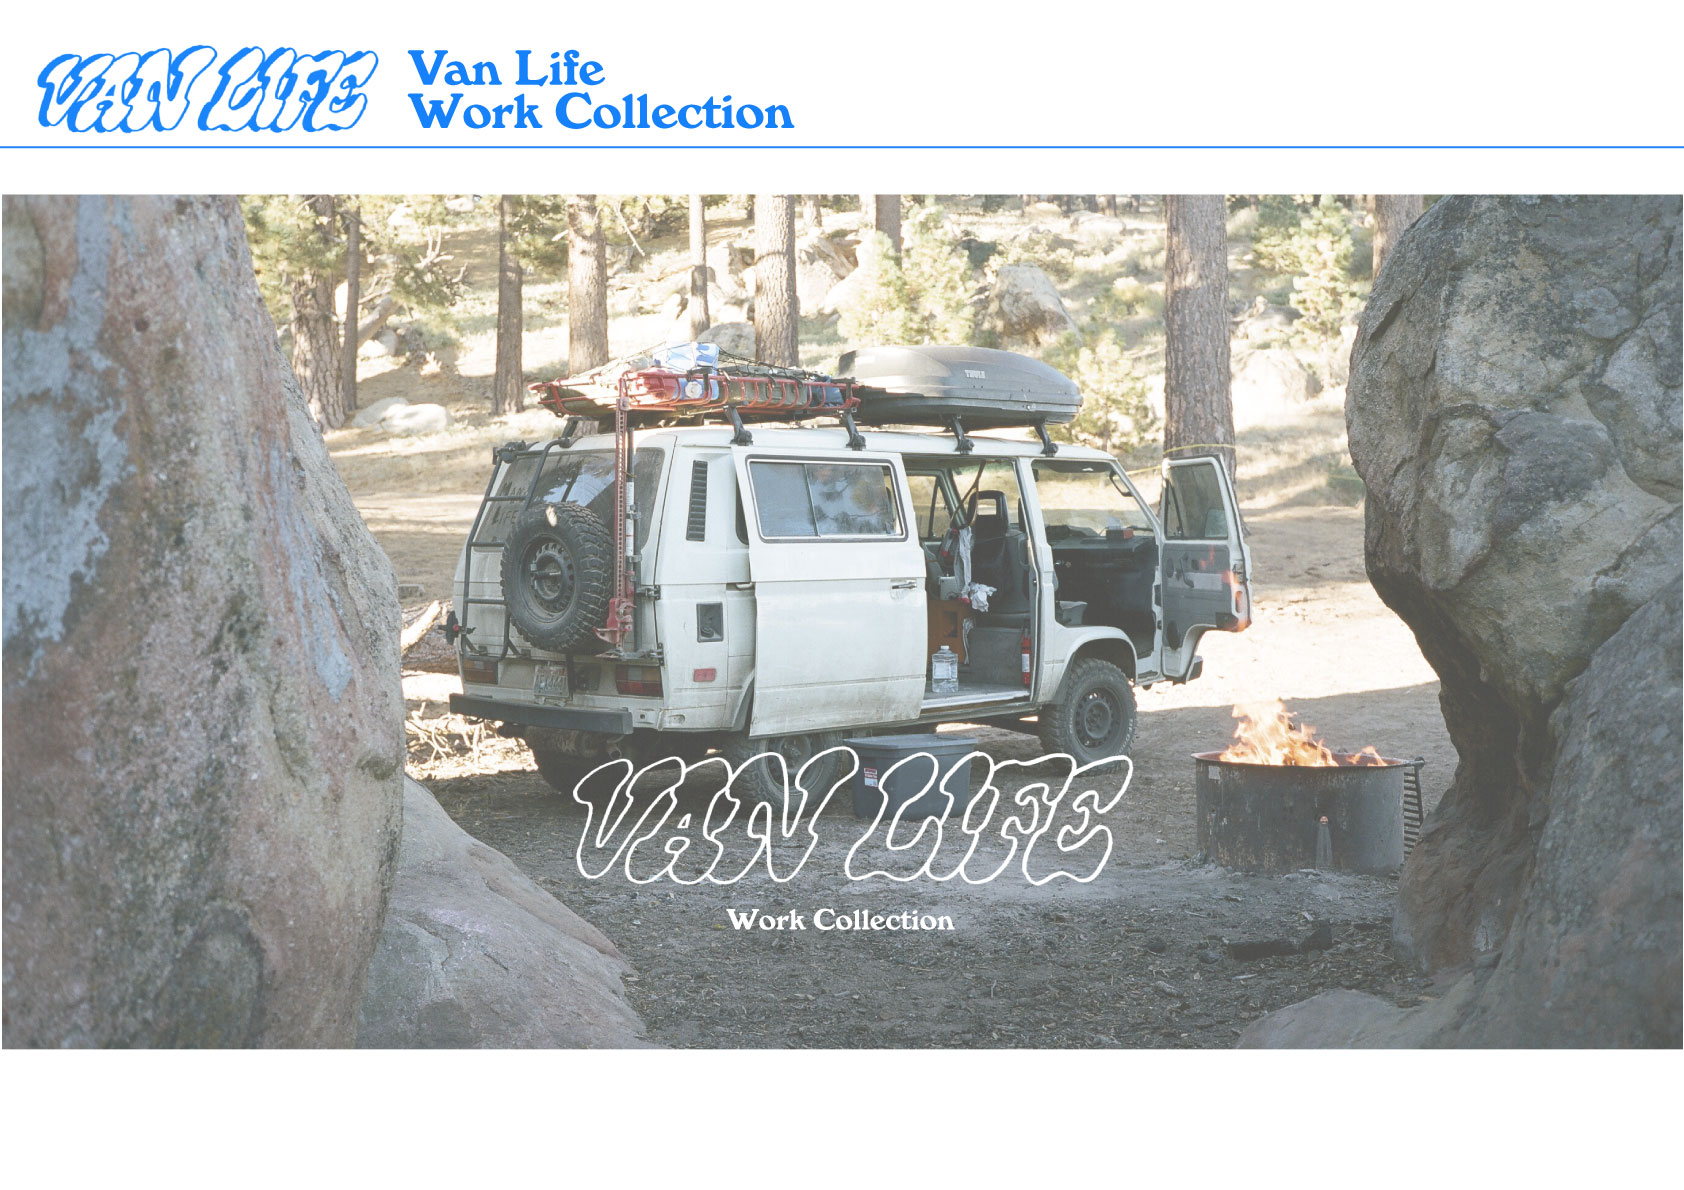 It's New!! VAN LIFE Work Collection